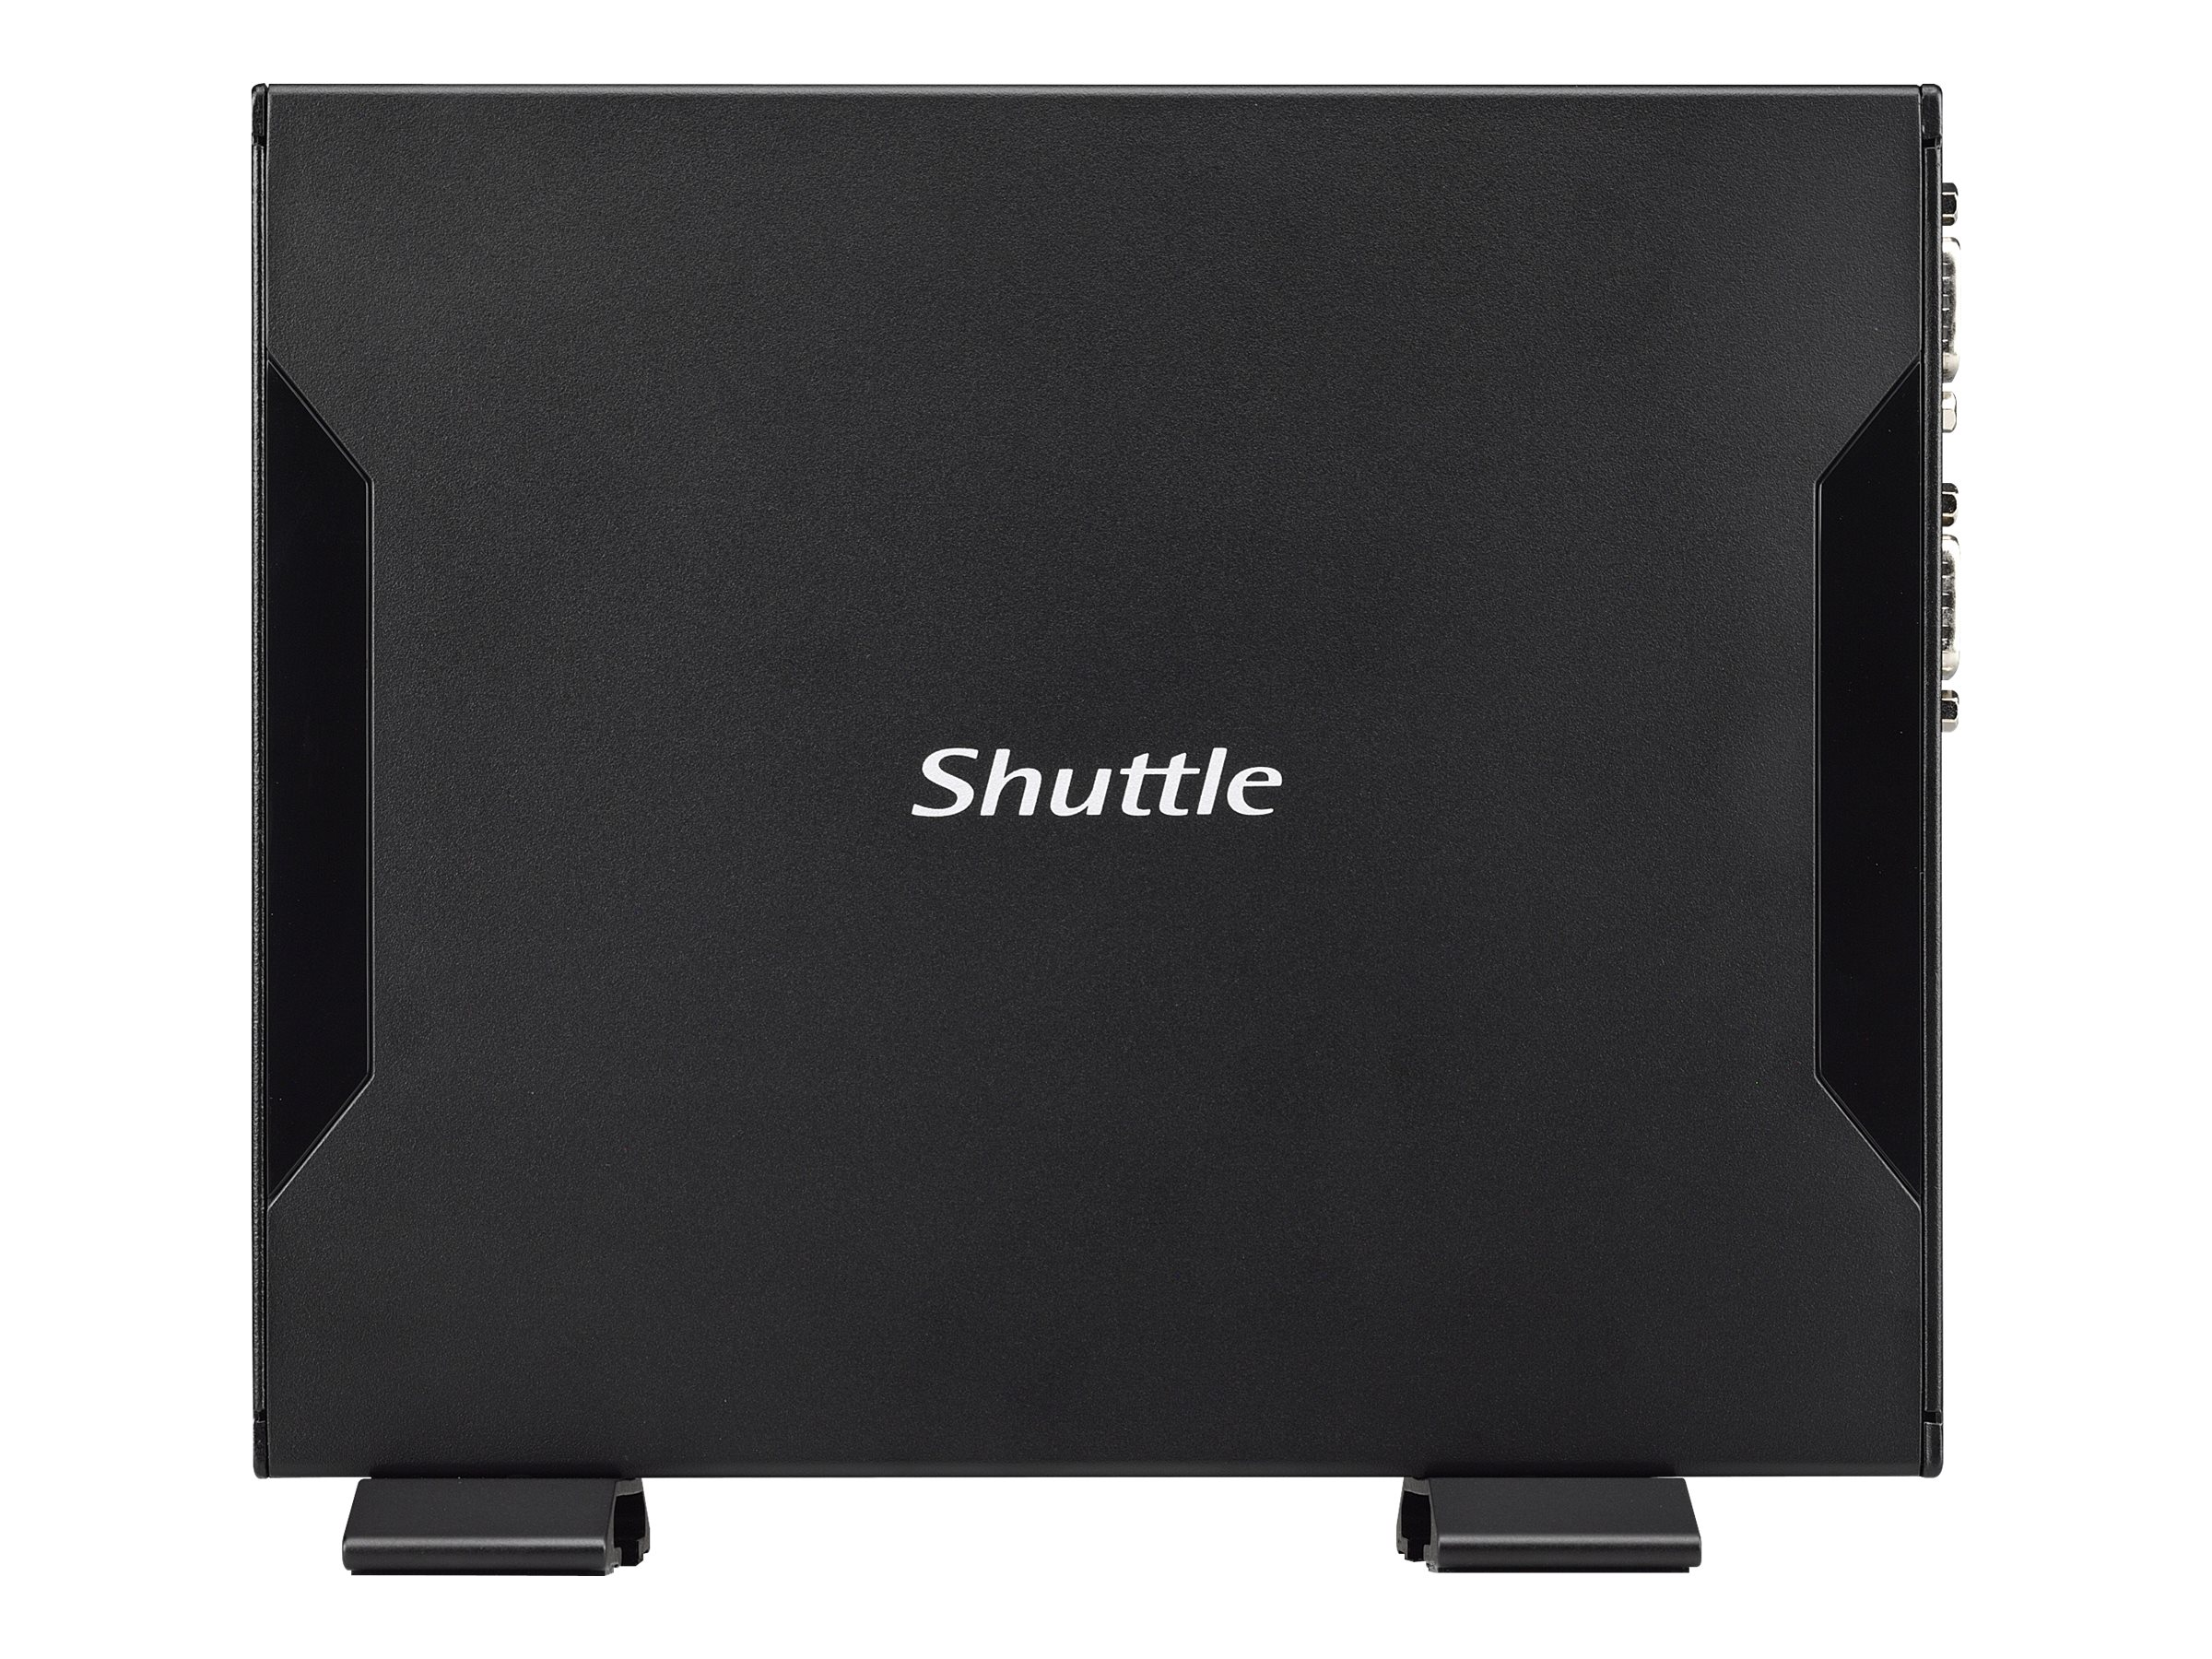 Shuttle Computer Group DS57U3 Image 7